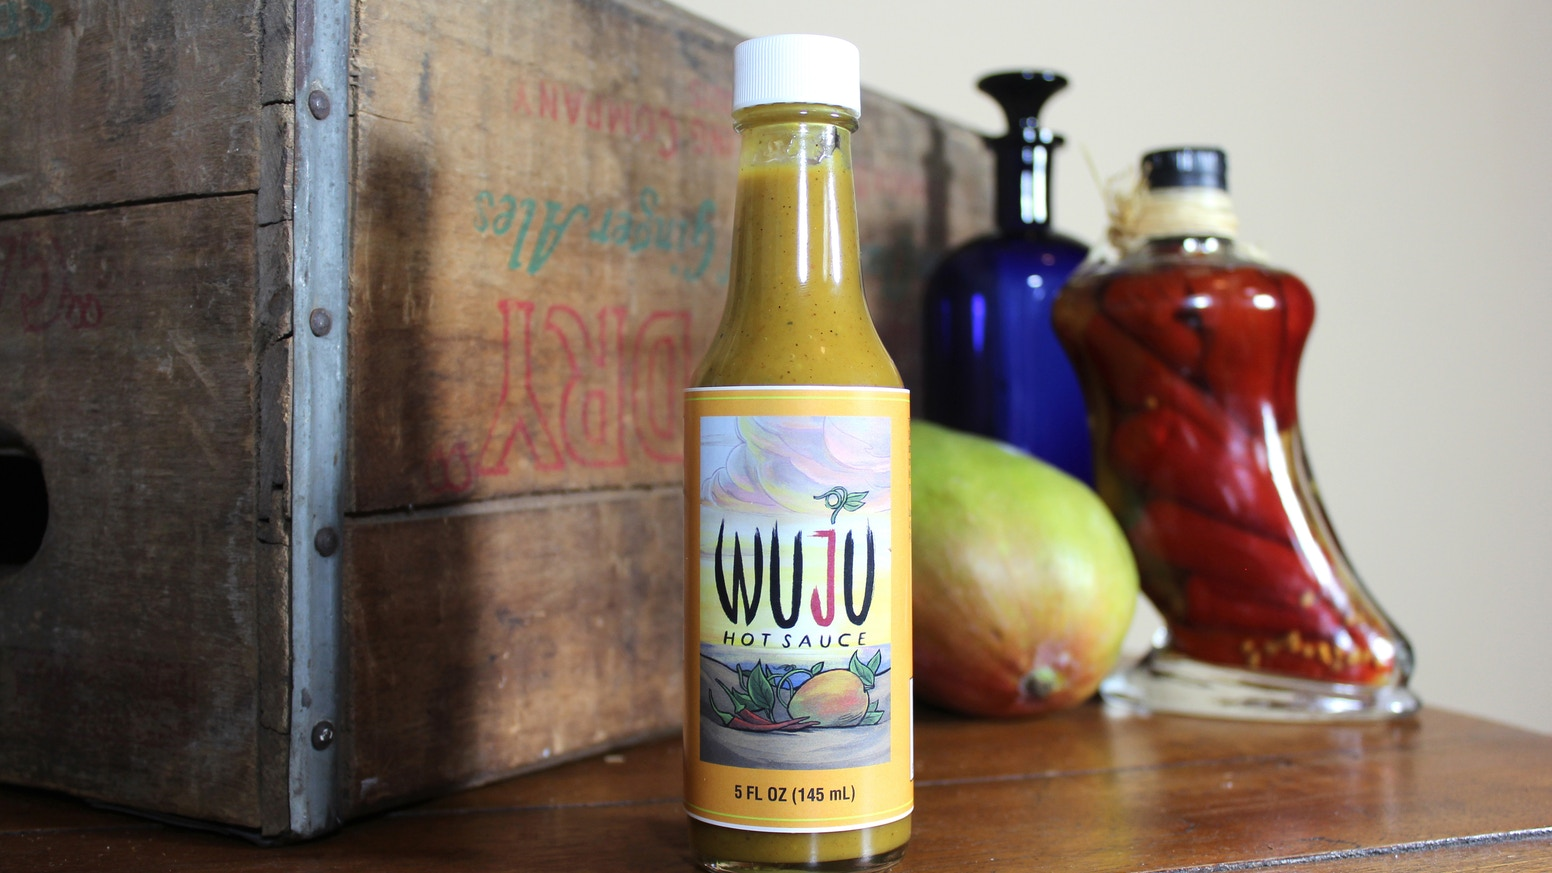 WUJU's habanero, mango, agave nectar, and rich spices blend Thai style flavors with perfect, wholesome heat and sweetness. www.wujuhotsauce.com